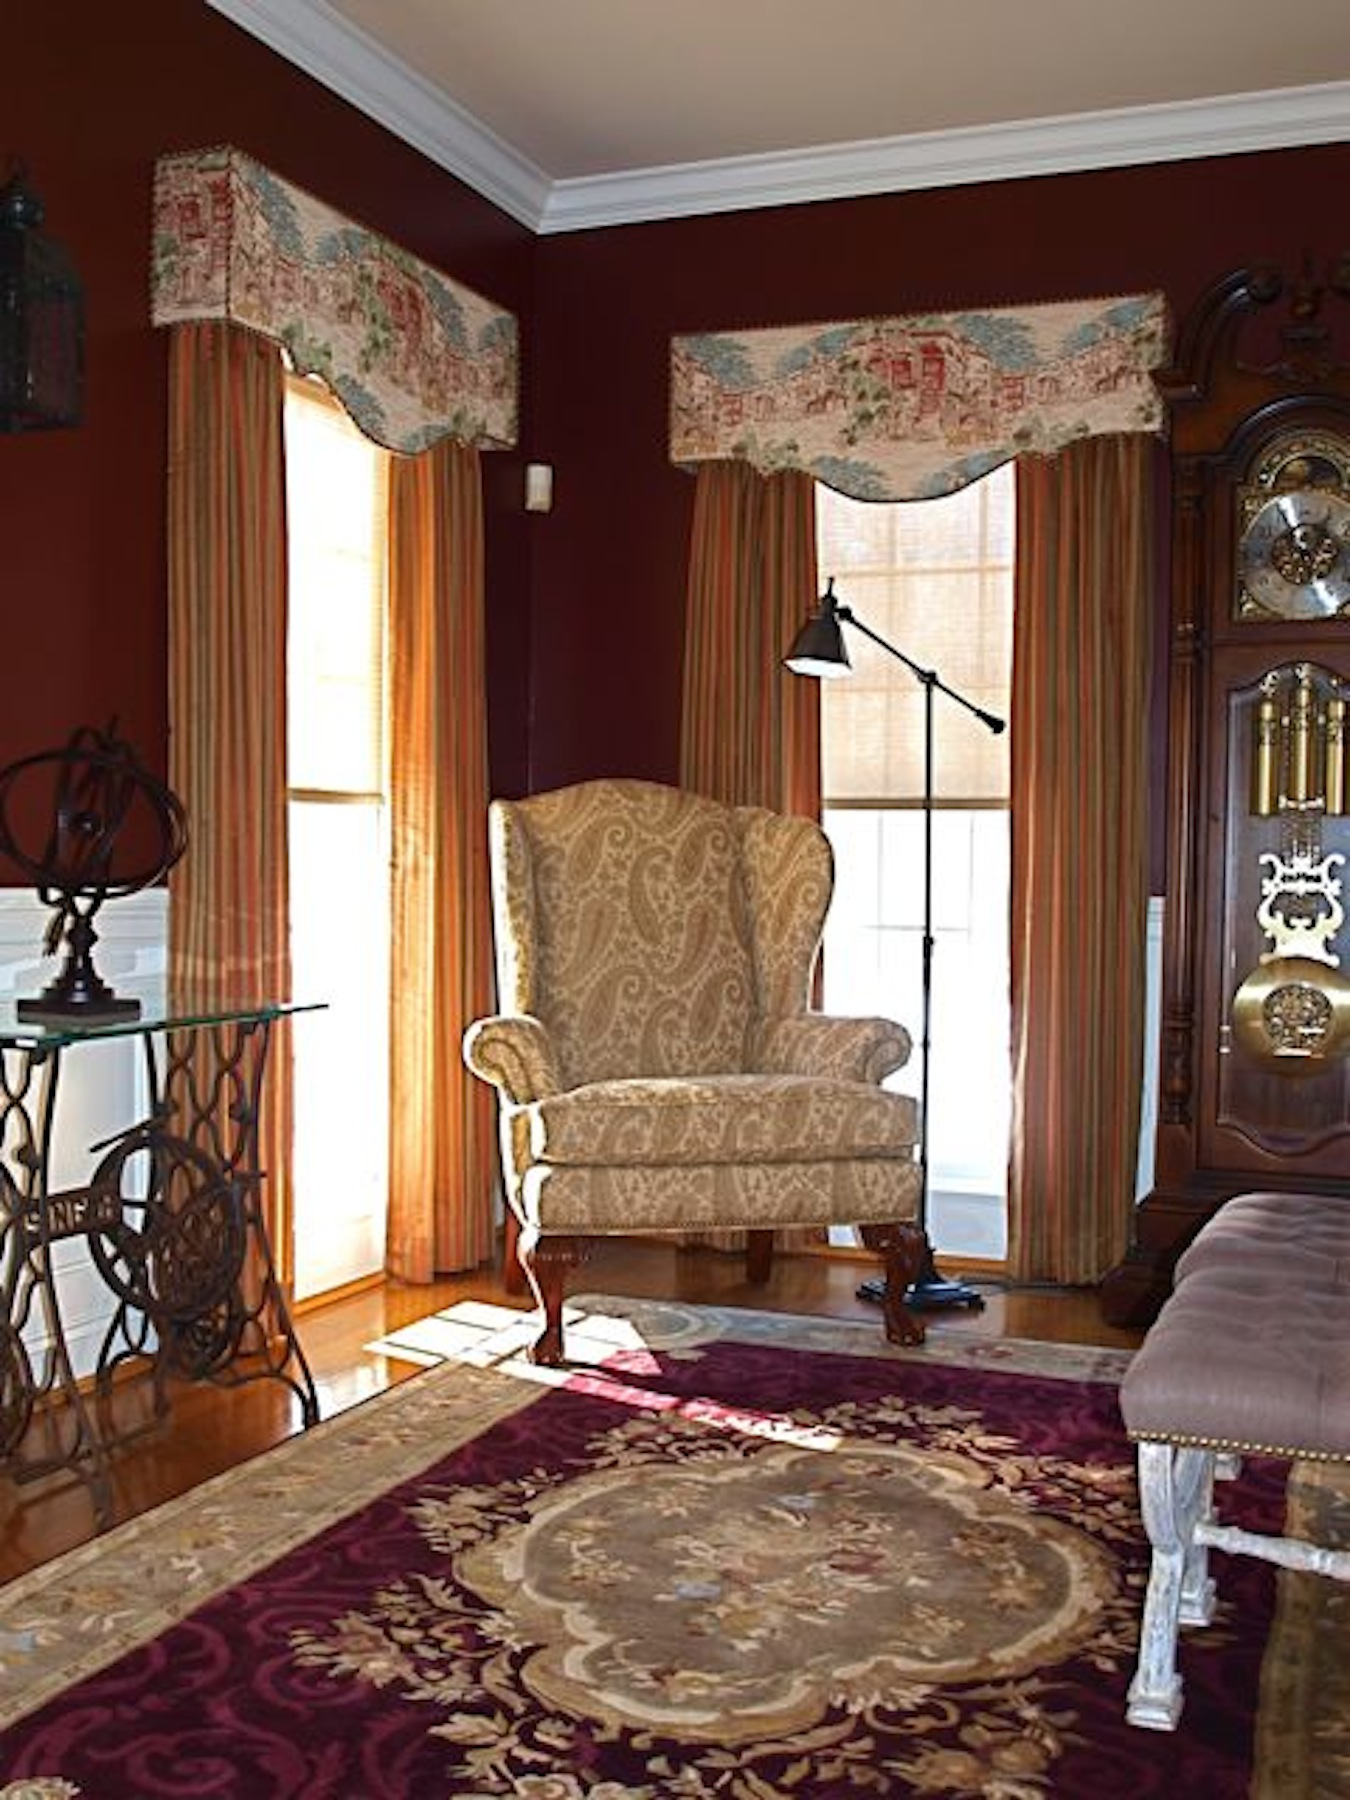 Decorative Curtains For Living Room: Corner Window Curtains: Styles Of Decorating Ideas